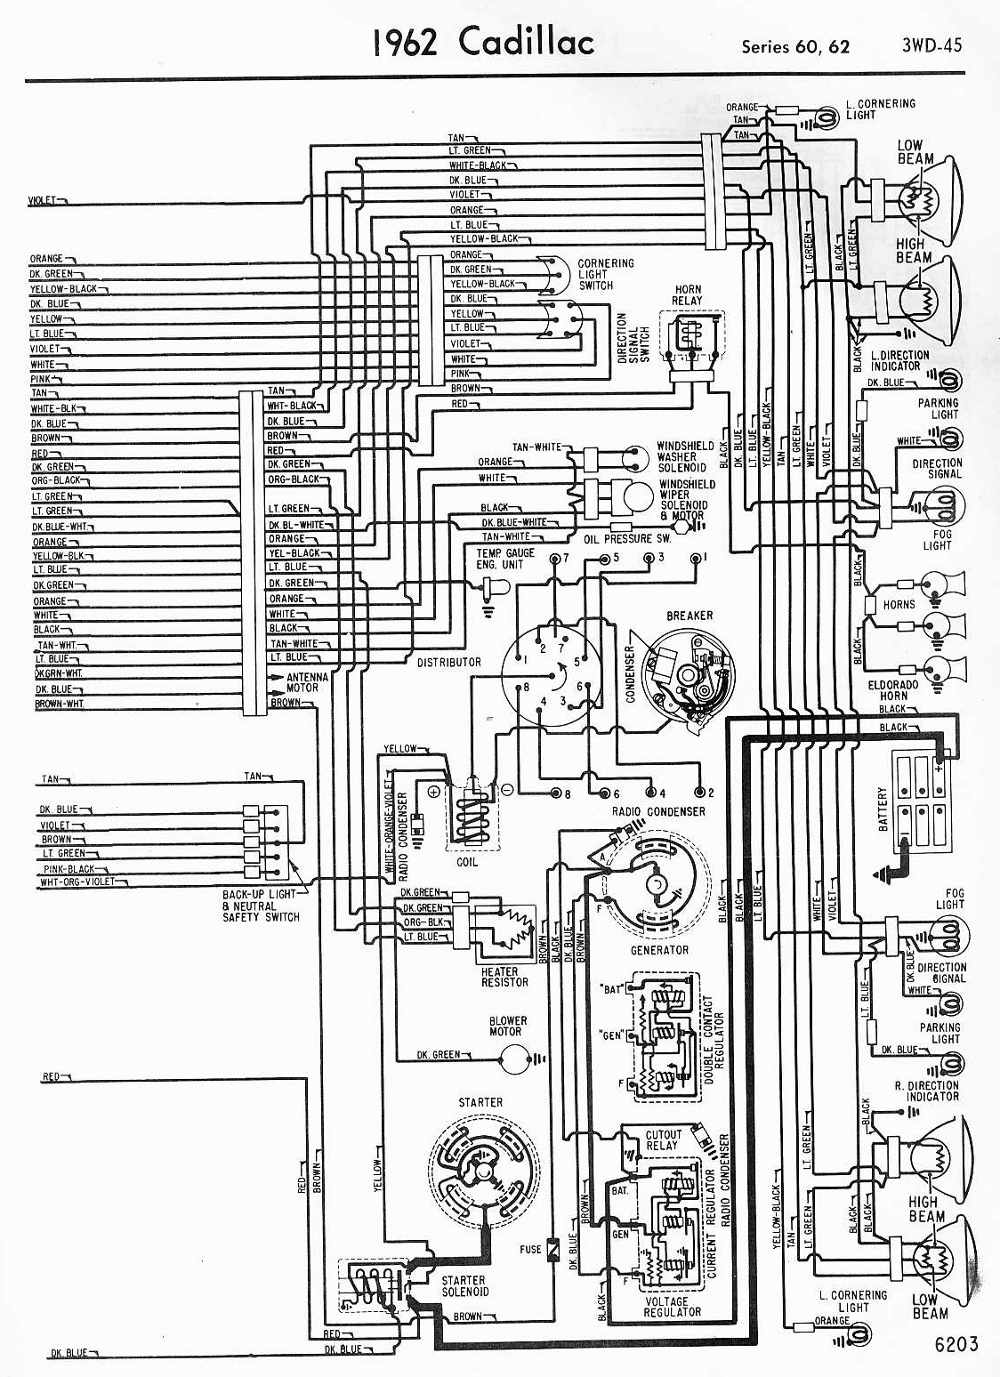 cadillac wiring diagram cadillac circuit diagrams wire center u2022 rh abetter pw Cadillac DeVille Wiring-Diagram Fisher-Price Cadillac Wiring-Diagram